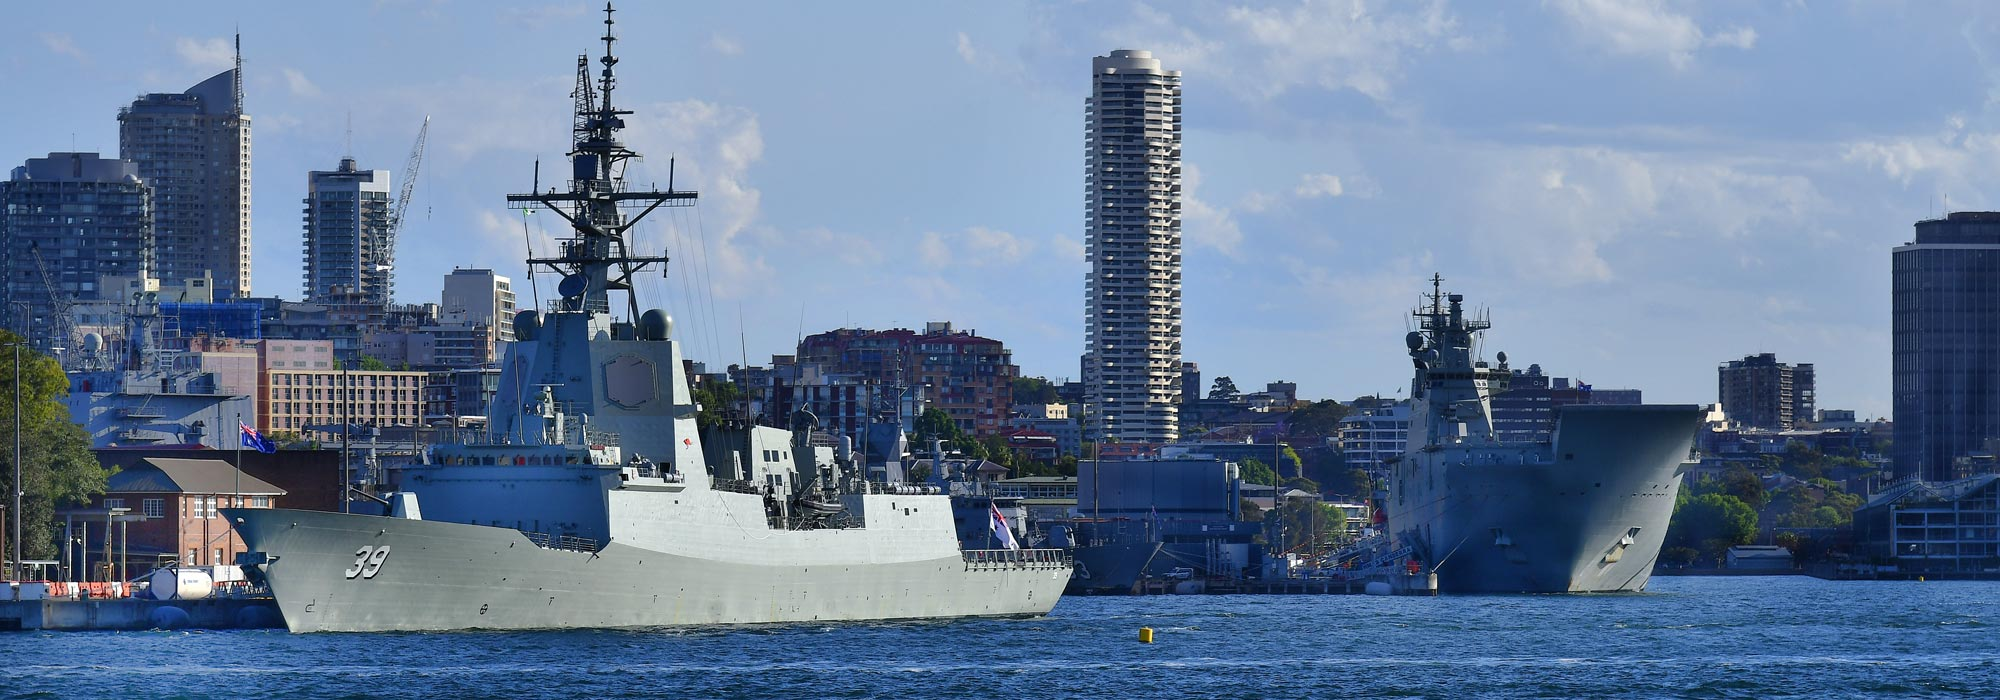 Australian Navy seized illegal drugs